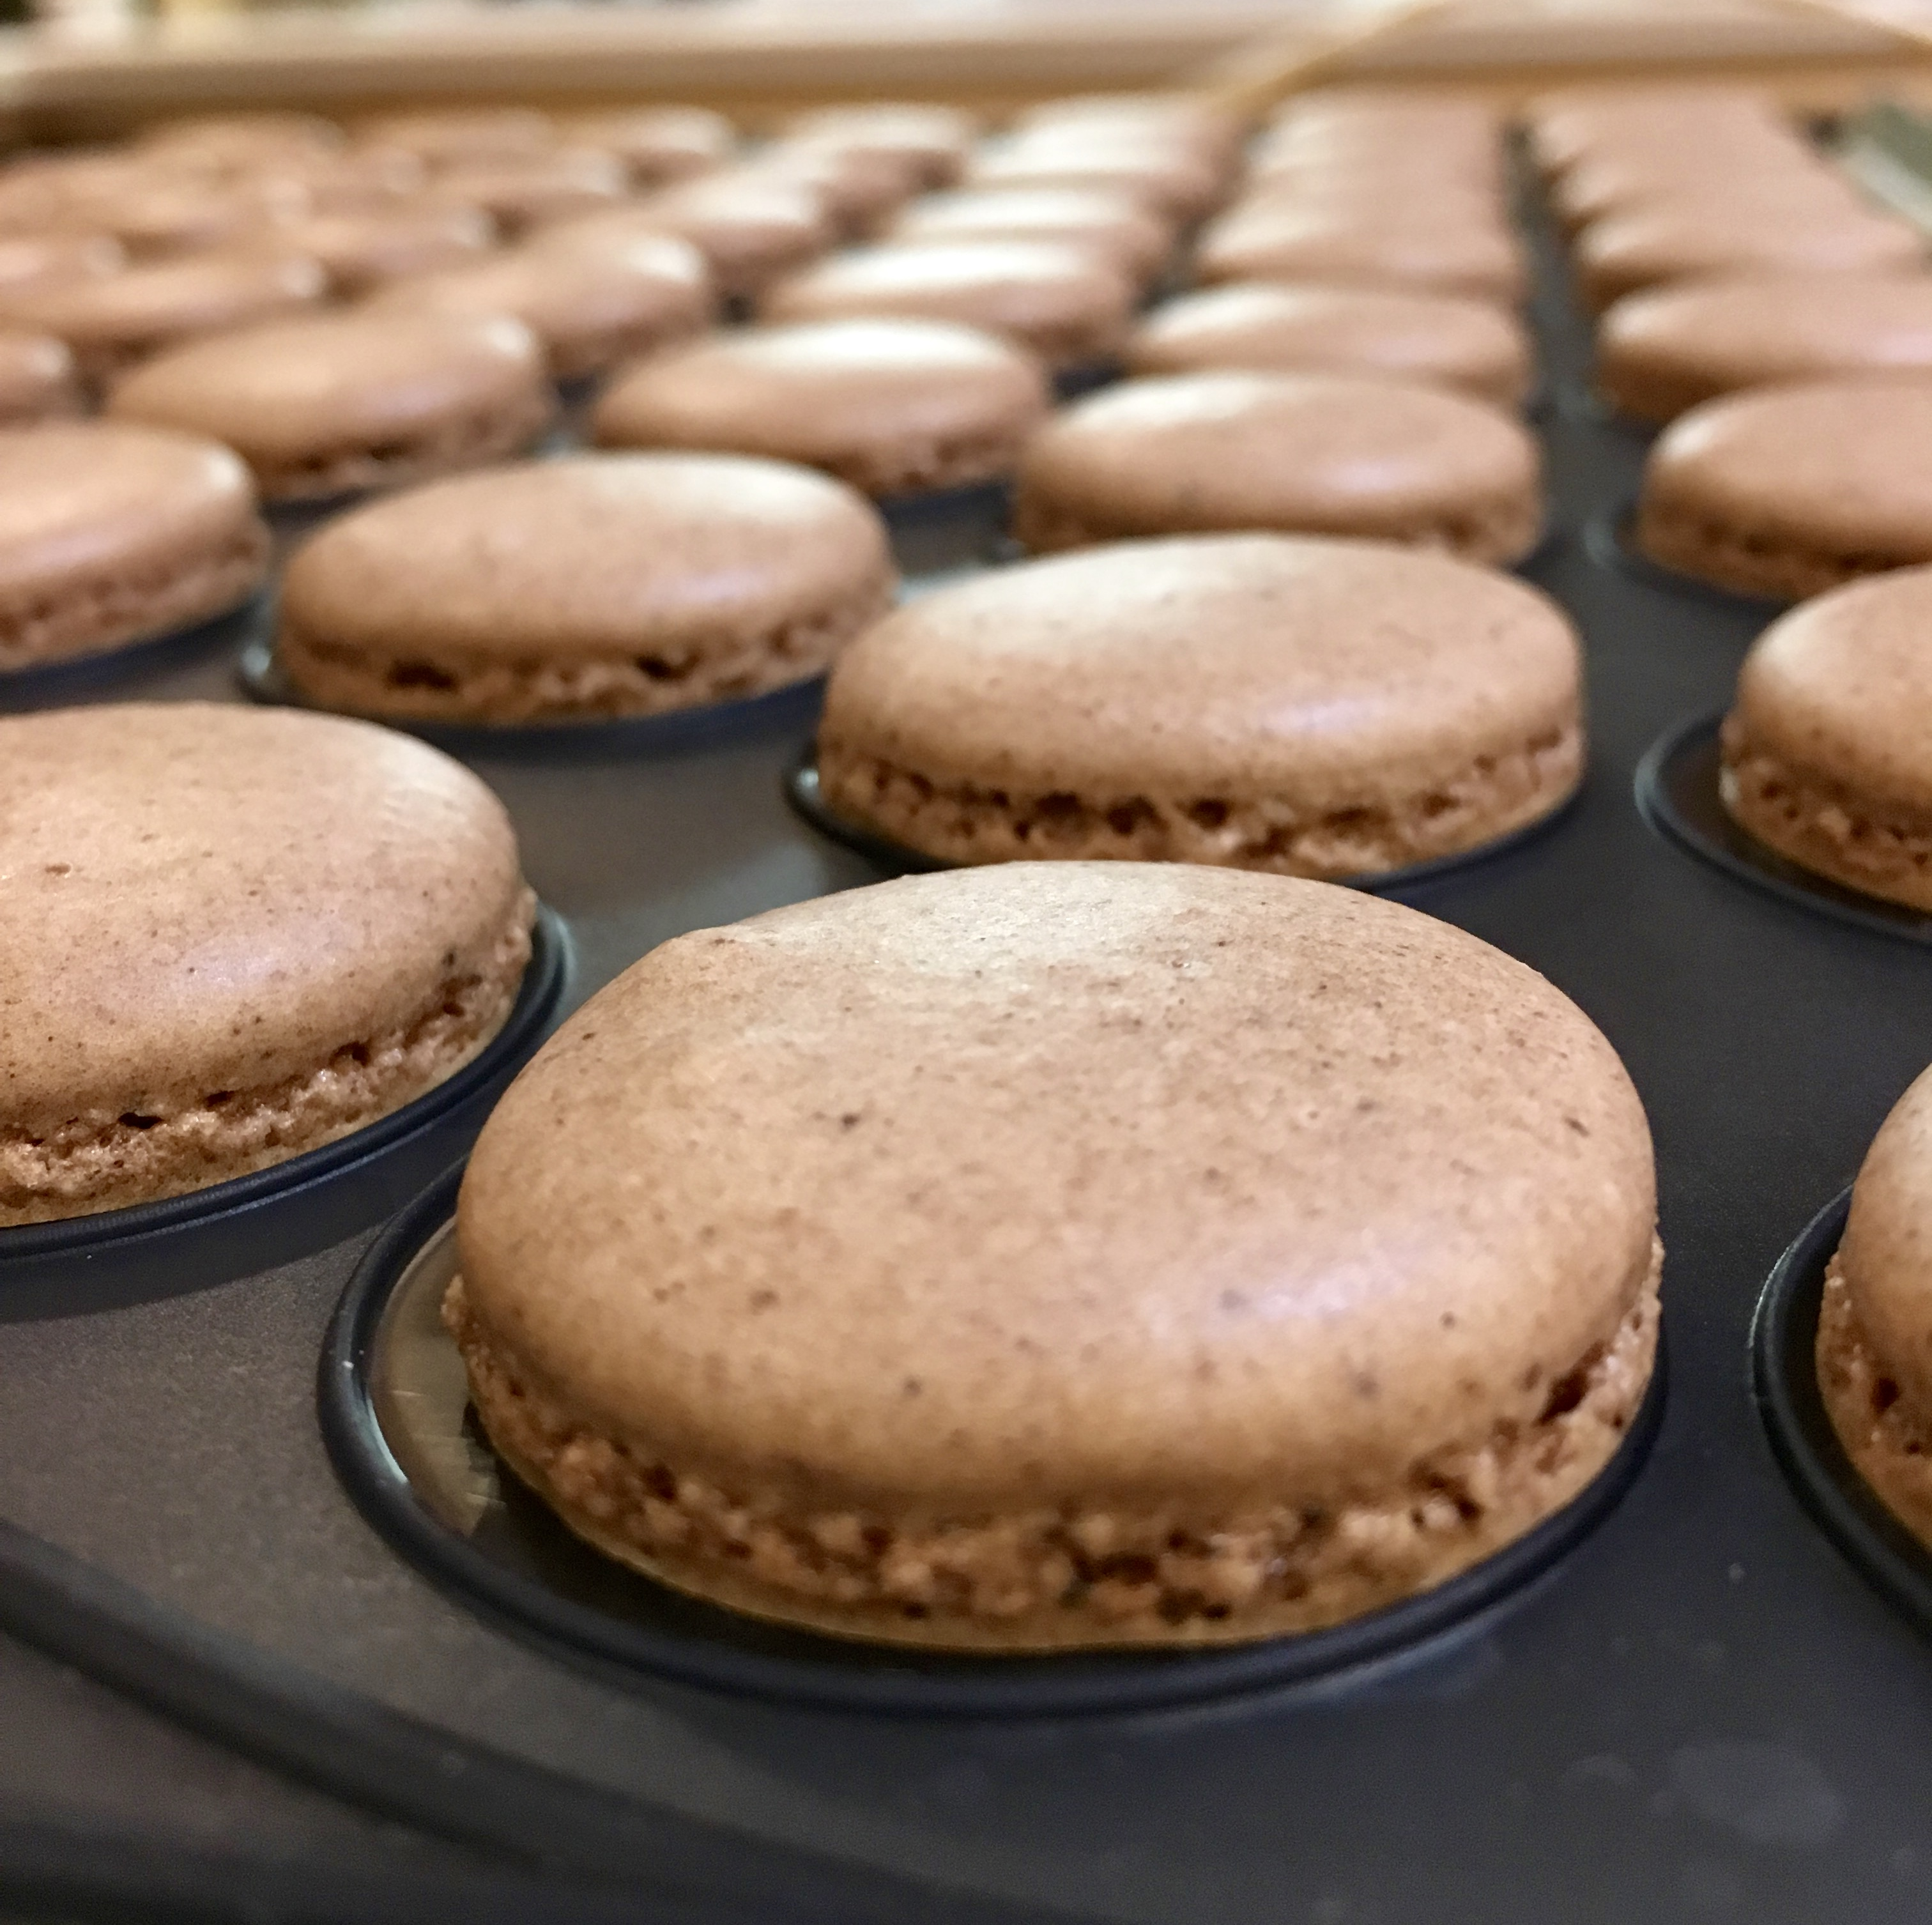 baked chocolate macaron showing foot